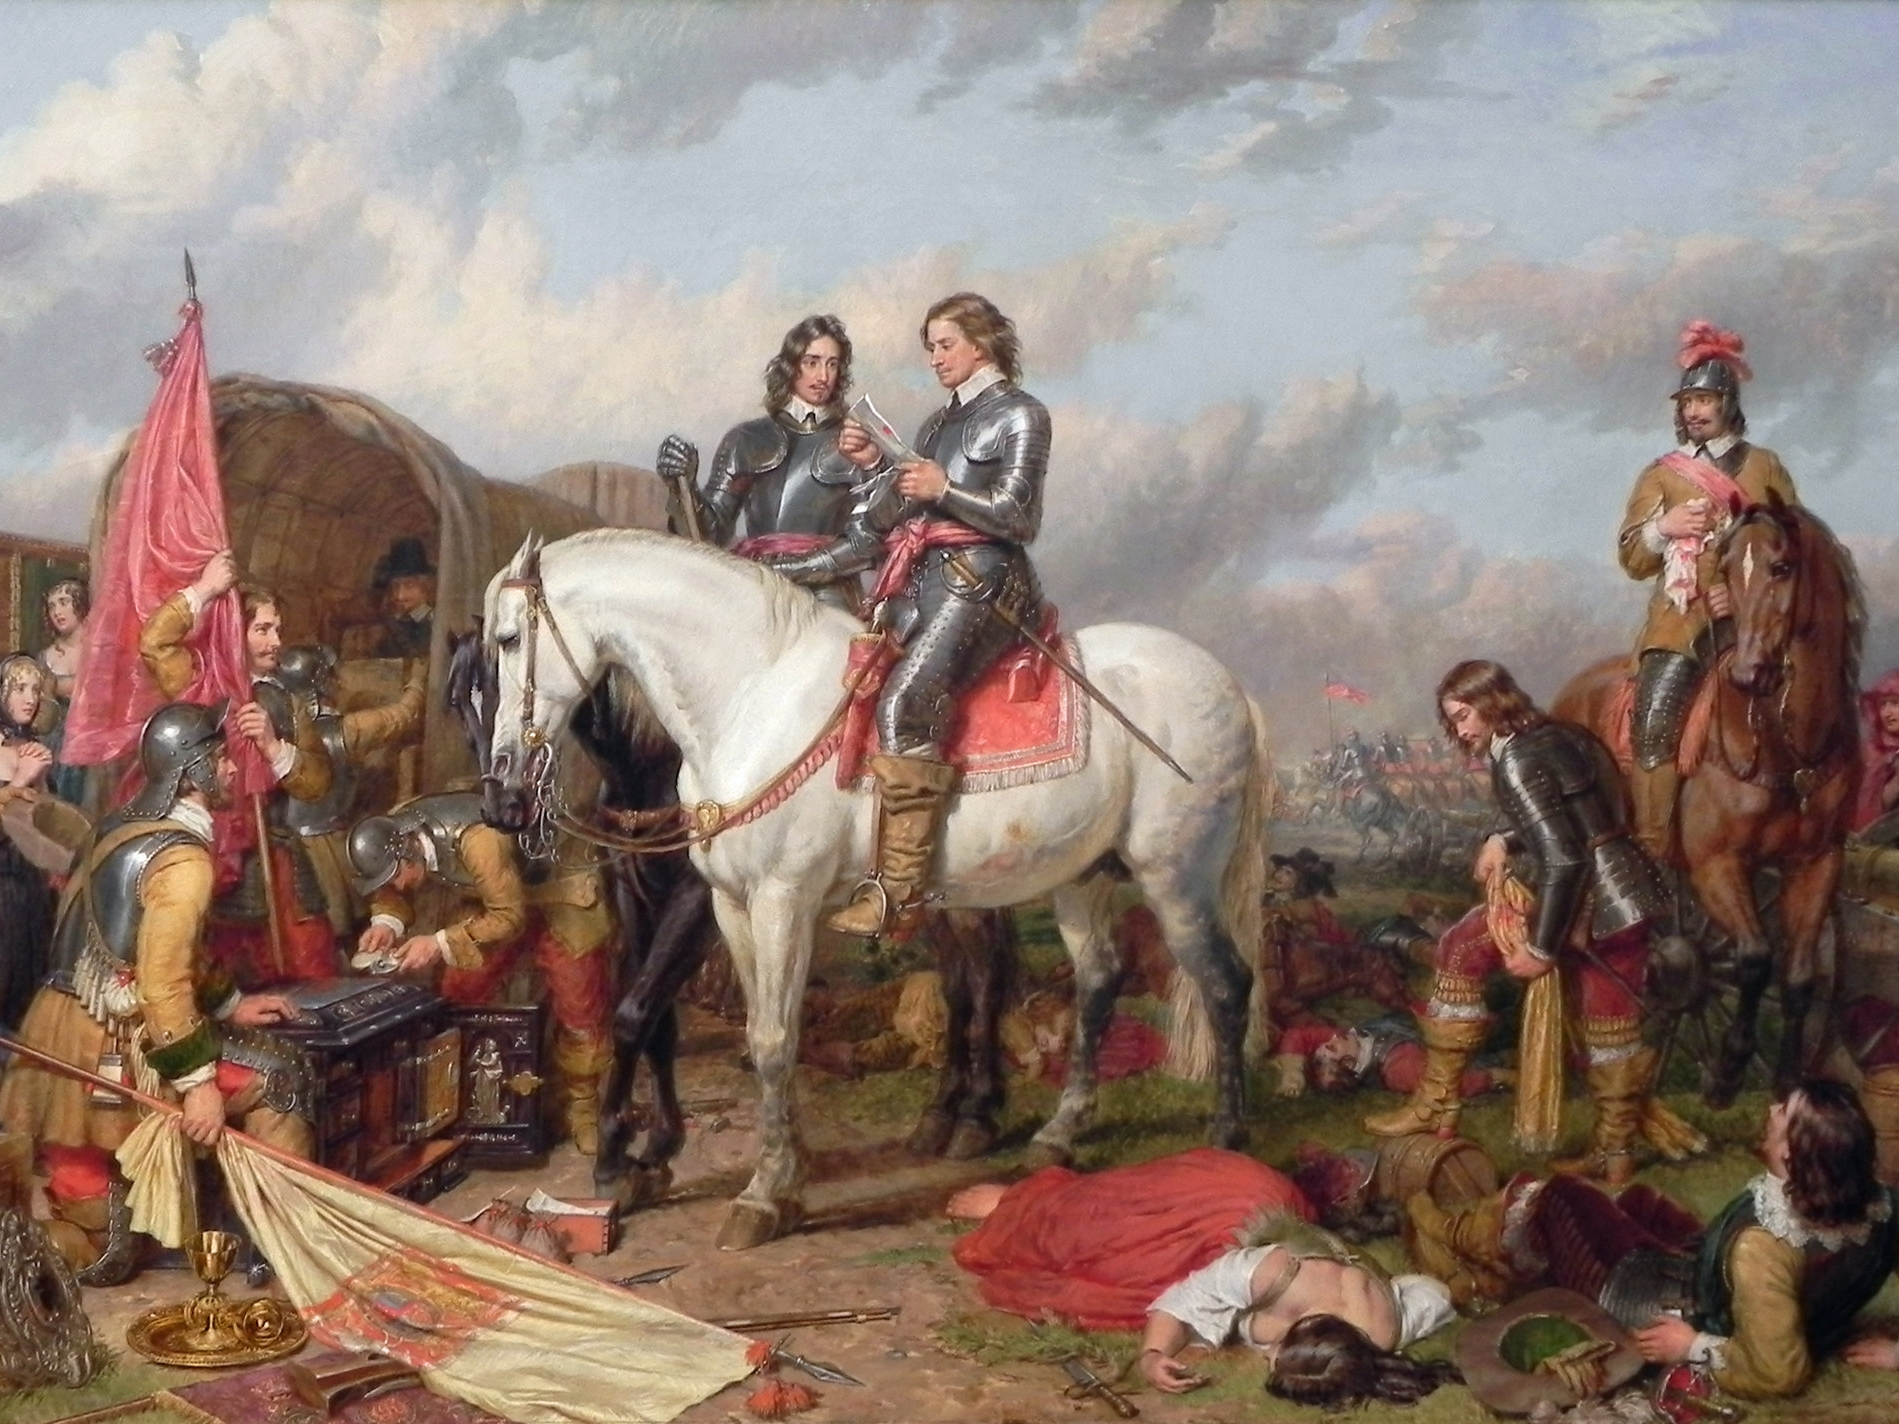 Charles I disbanded Parliament, enforced Anglican worship then he was executed by Lord Cromwell's New Model Army. Parliament restored the crown in 1660 to Charles II. 2/5 of London died from plague, then London burned when fires raged.